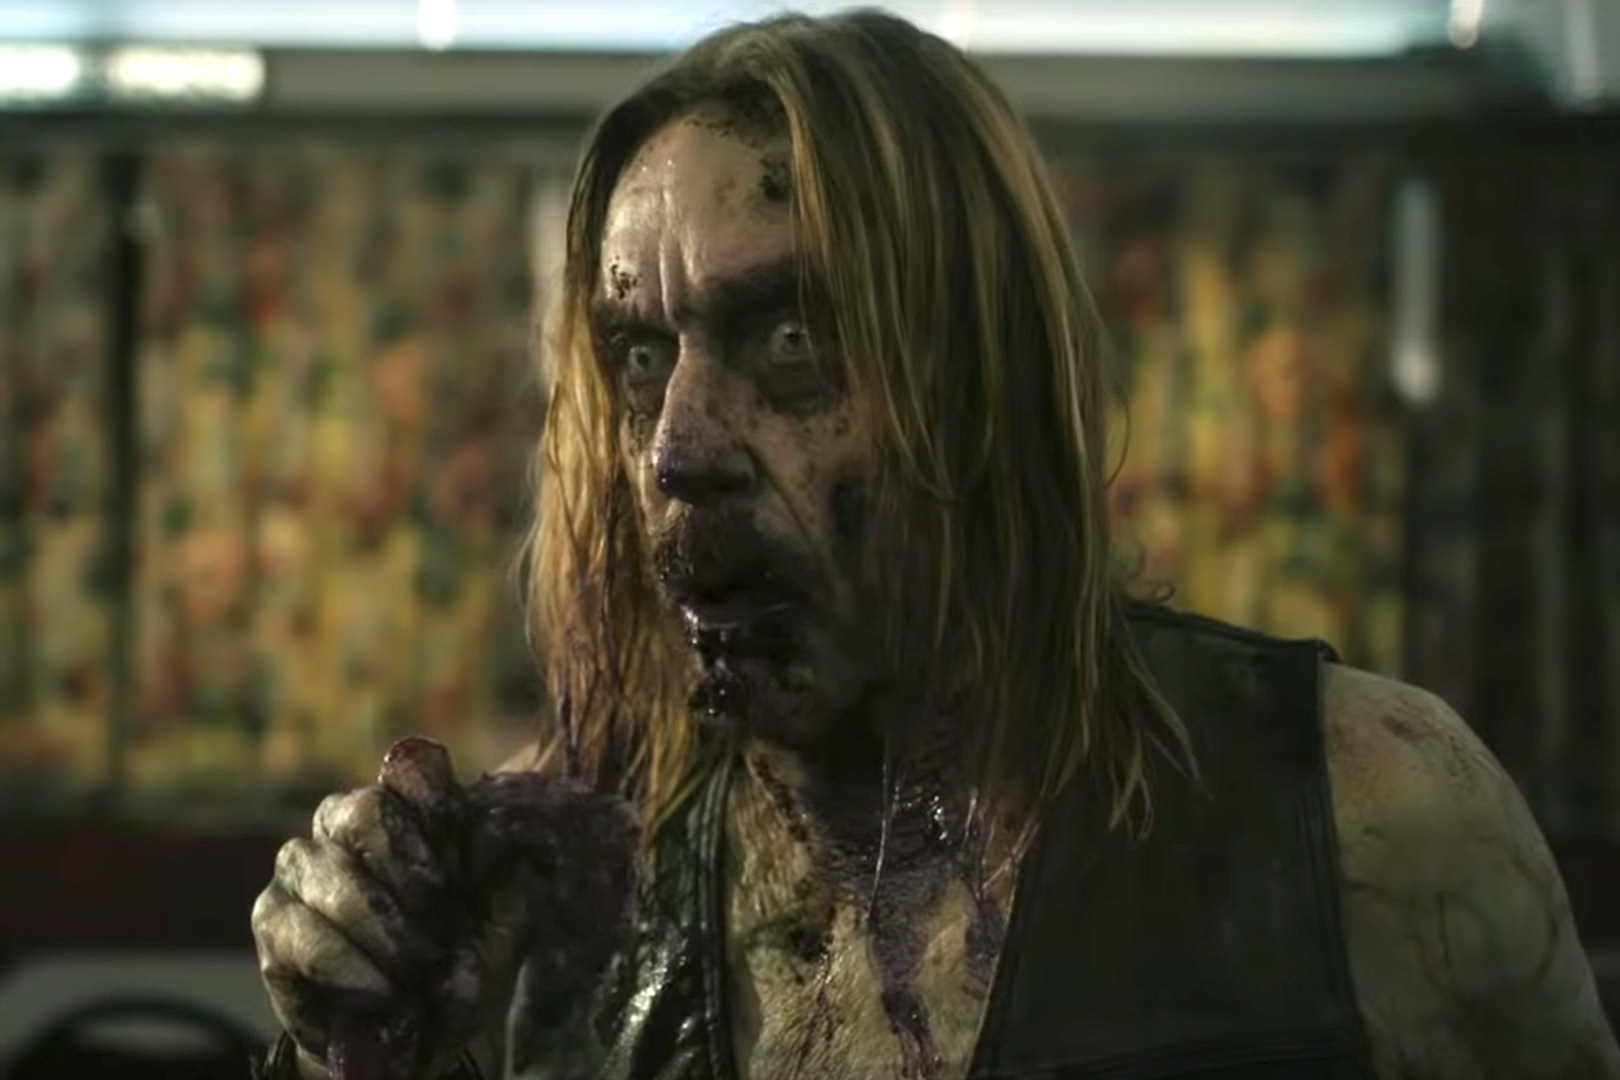 Watch Iggy Pop Devour Human Flesh in 'The Dead Don't Die'